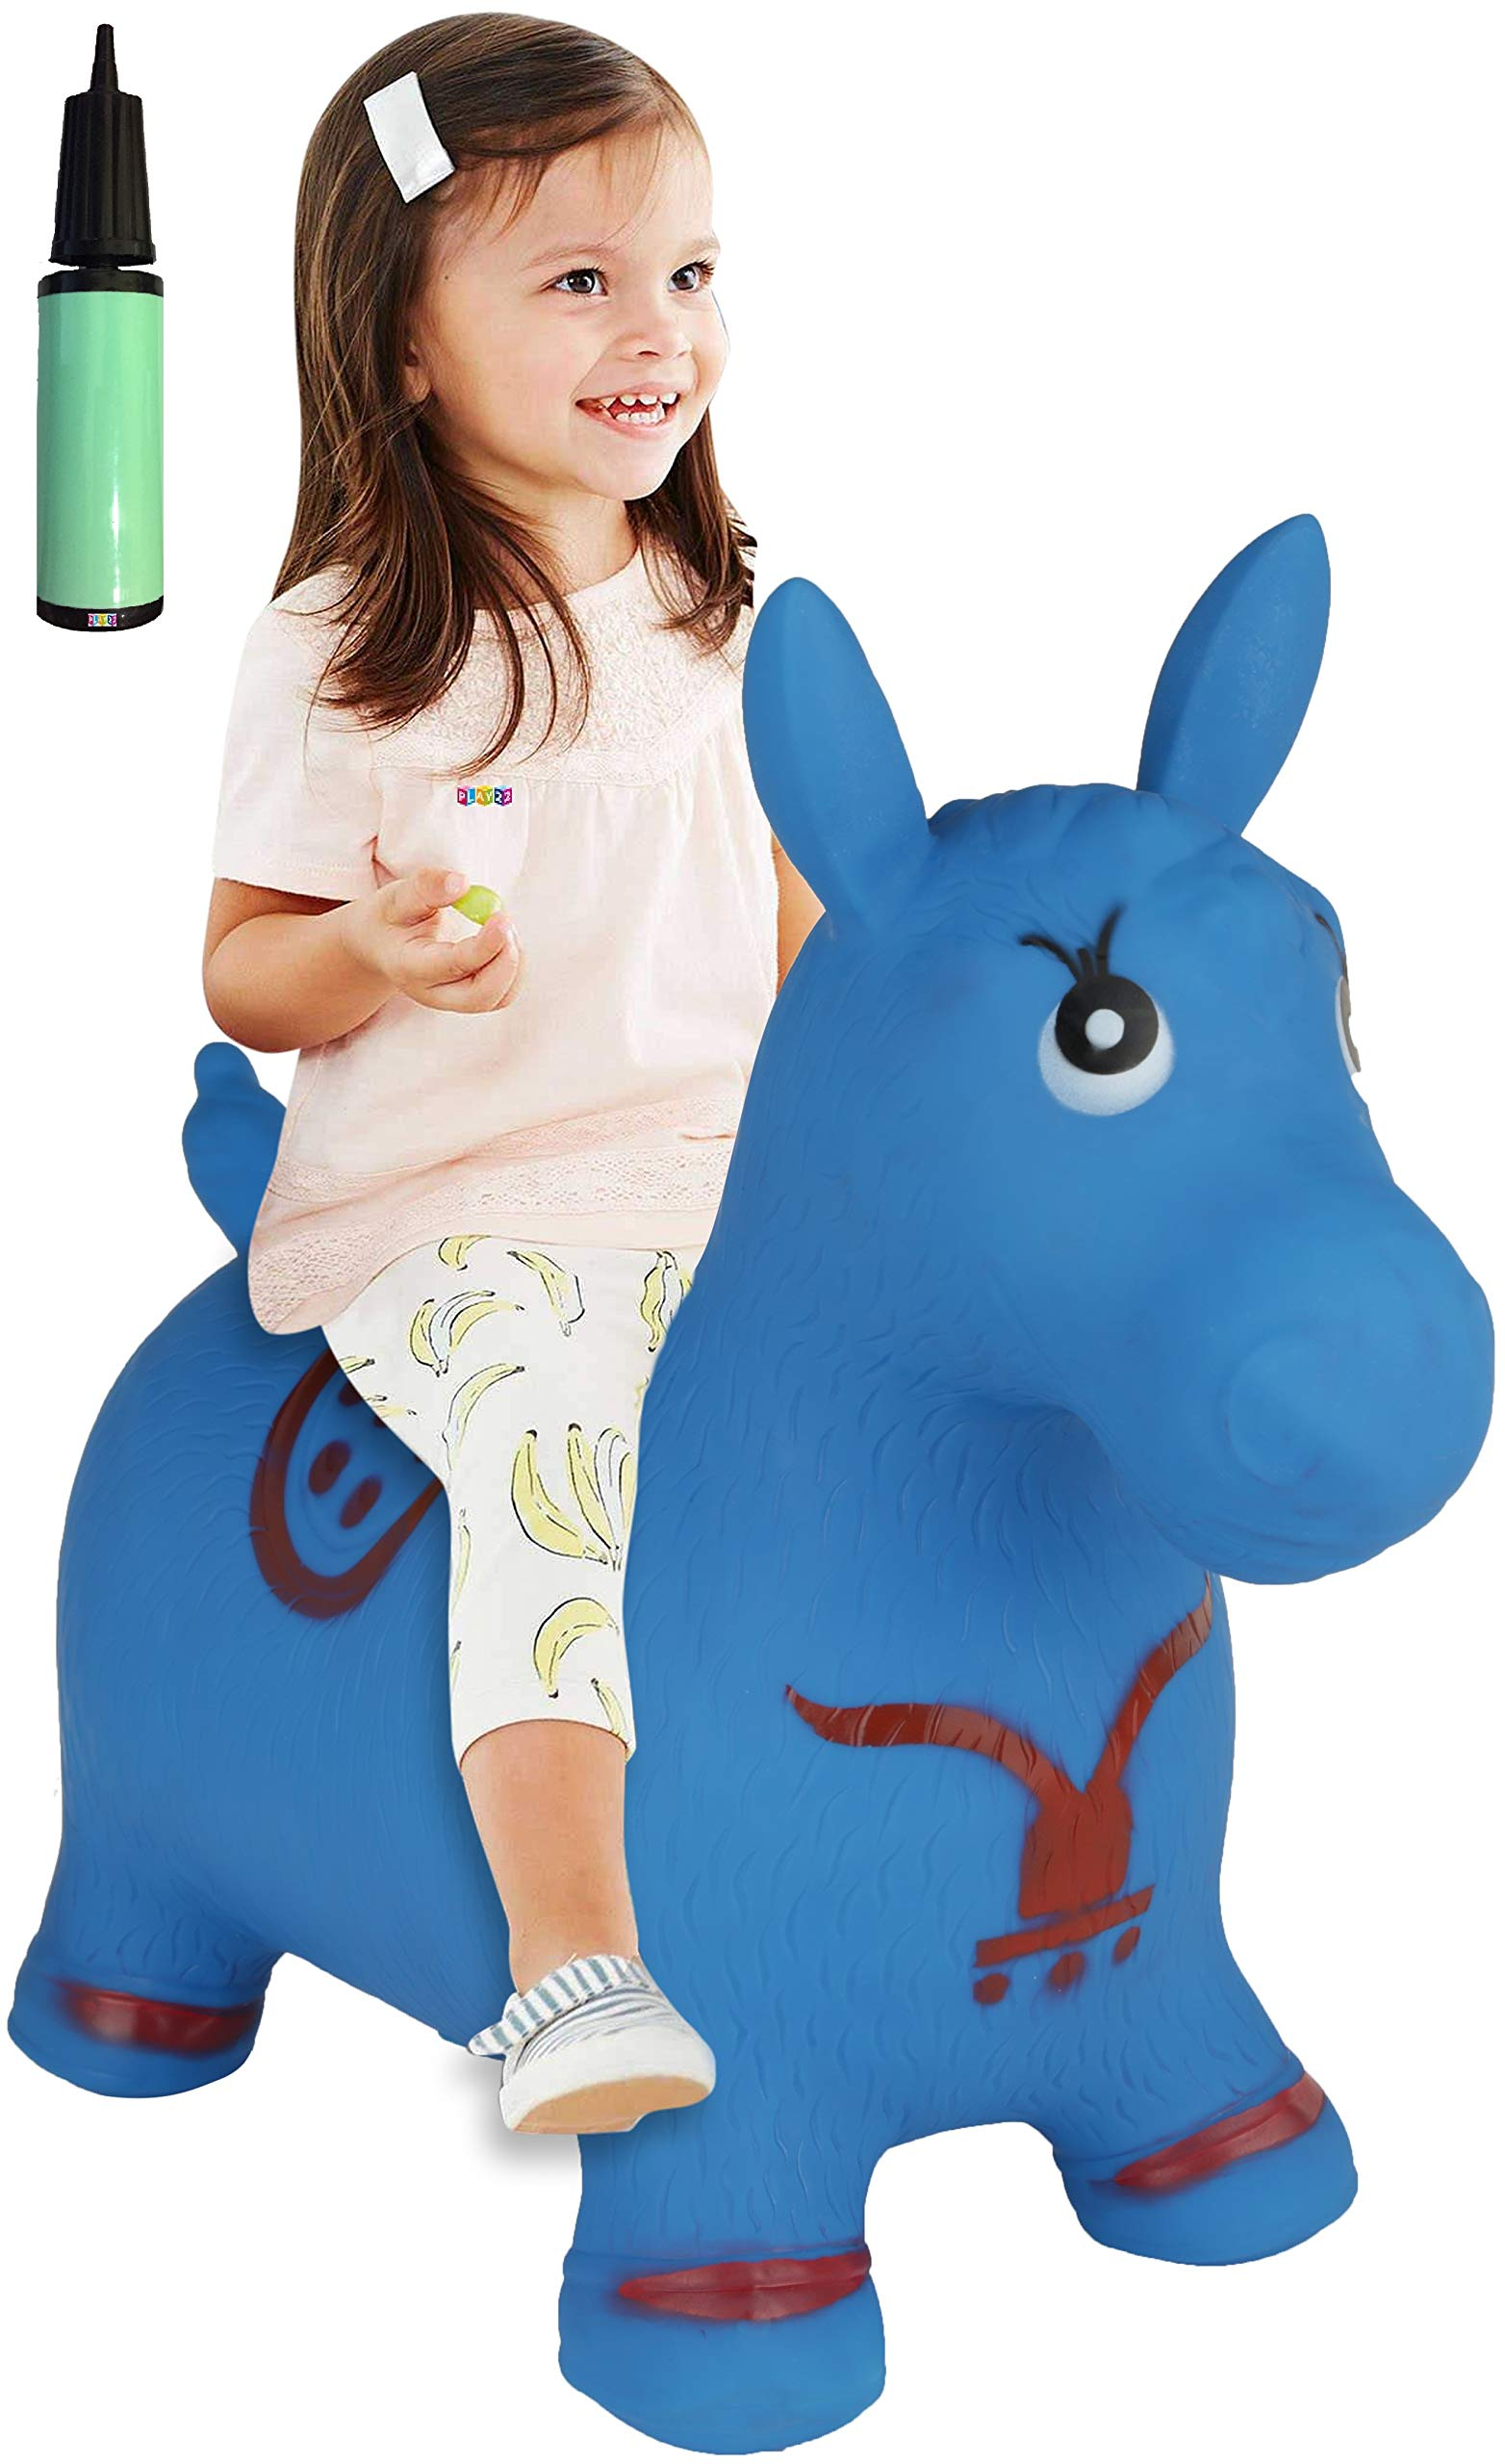 Horse Hopper BLUE - Inflatable Horse Bouncer Free Pump Included - Bouncy Horse Toys For Kids & Toddler Riding Horse Toy Great For Indoor And Outdoor Toys Play - Best Gift for Boys and Girls - Original